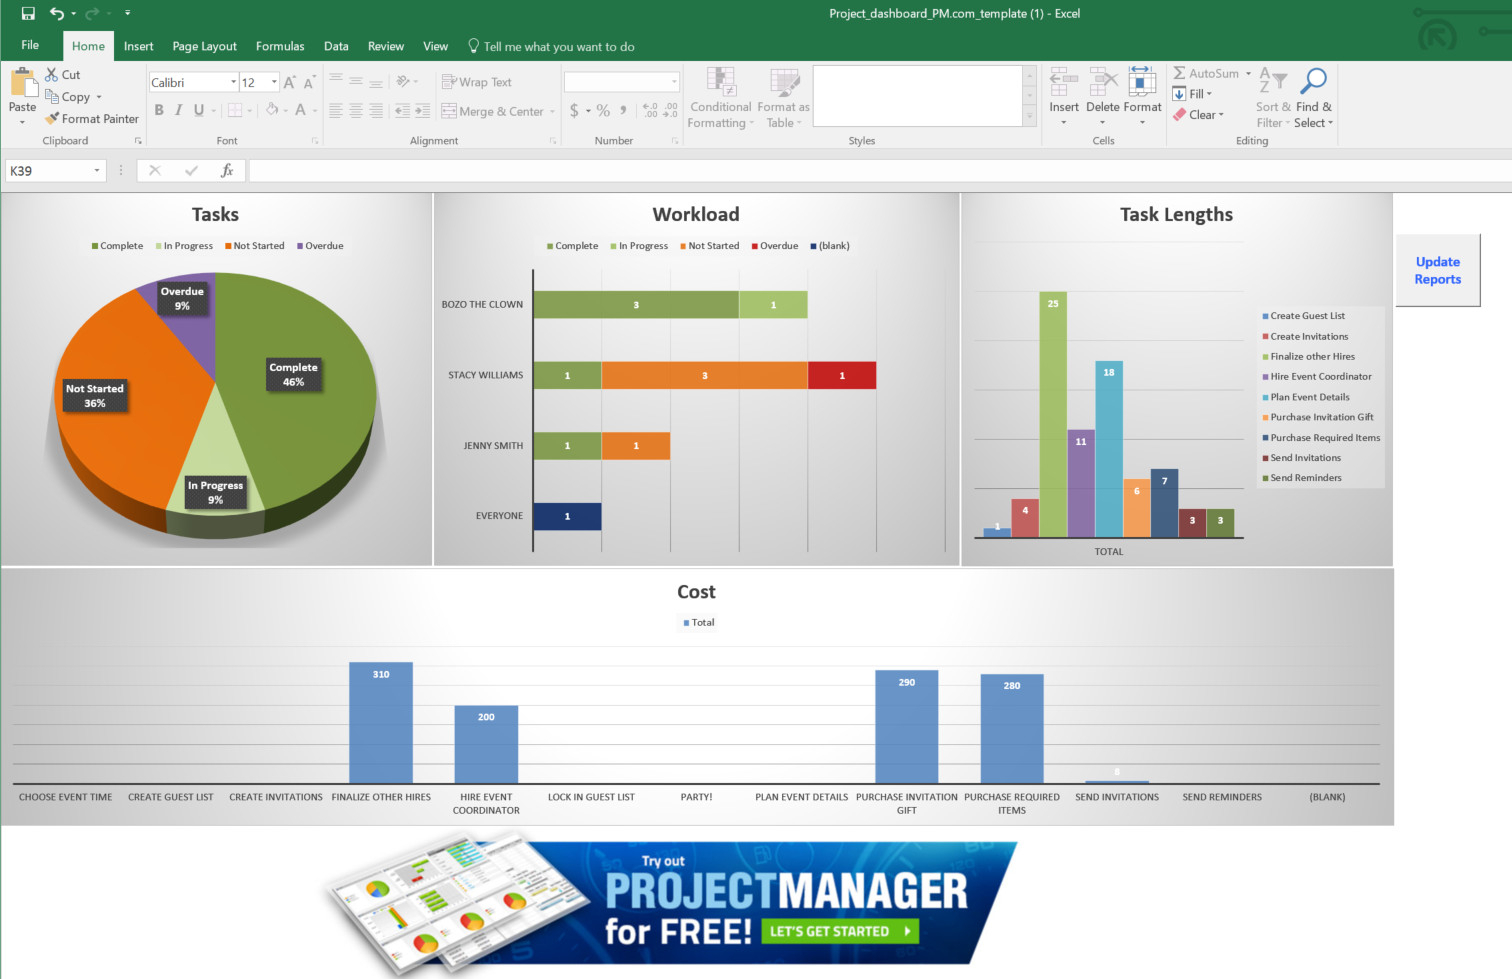 Guide To Excel Project Management - Projectmanager To Project Management Spreadsheet Free